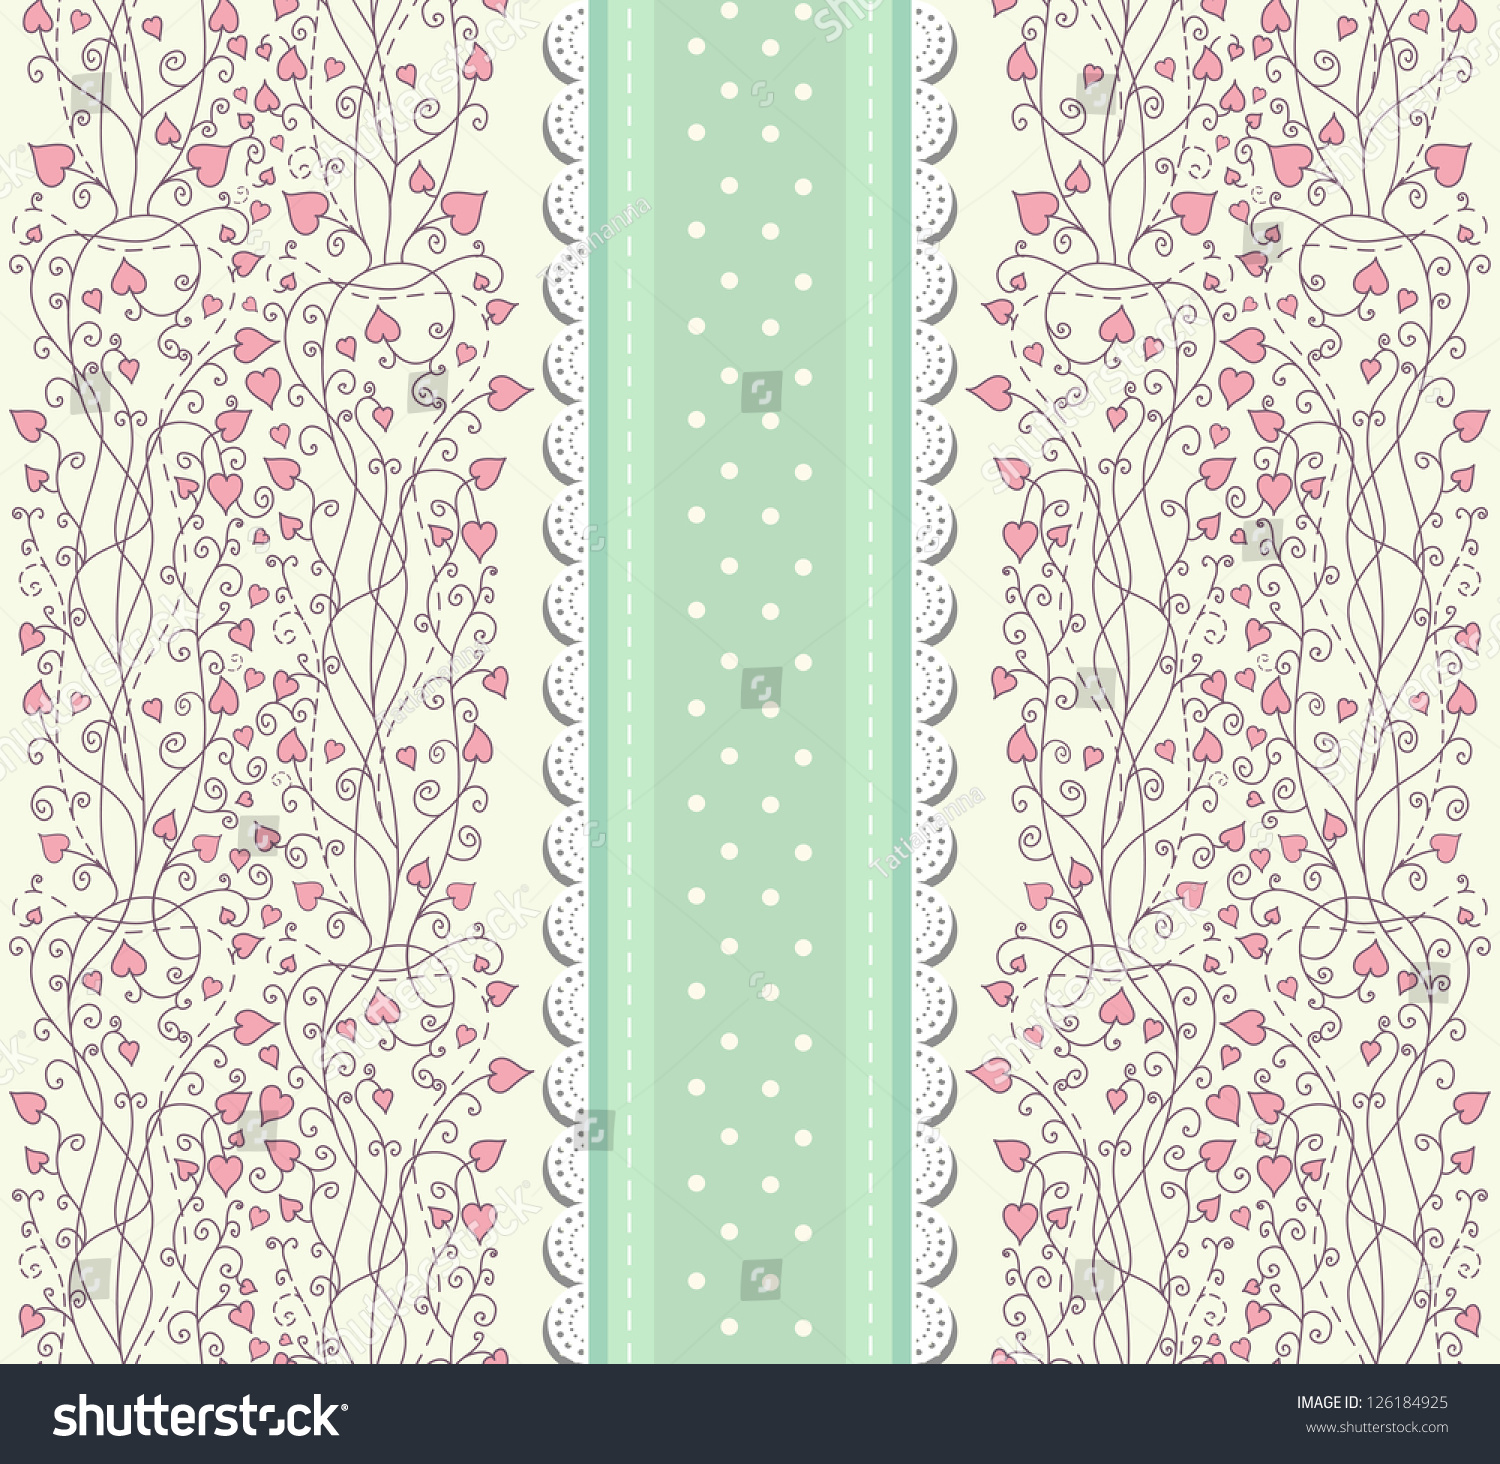 retro wallpaper with rosebuds in shabby chic style ez canvas